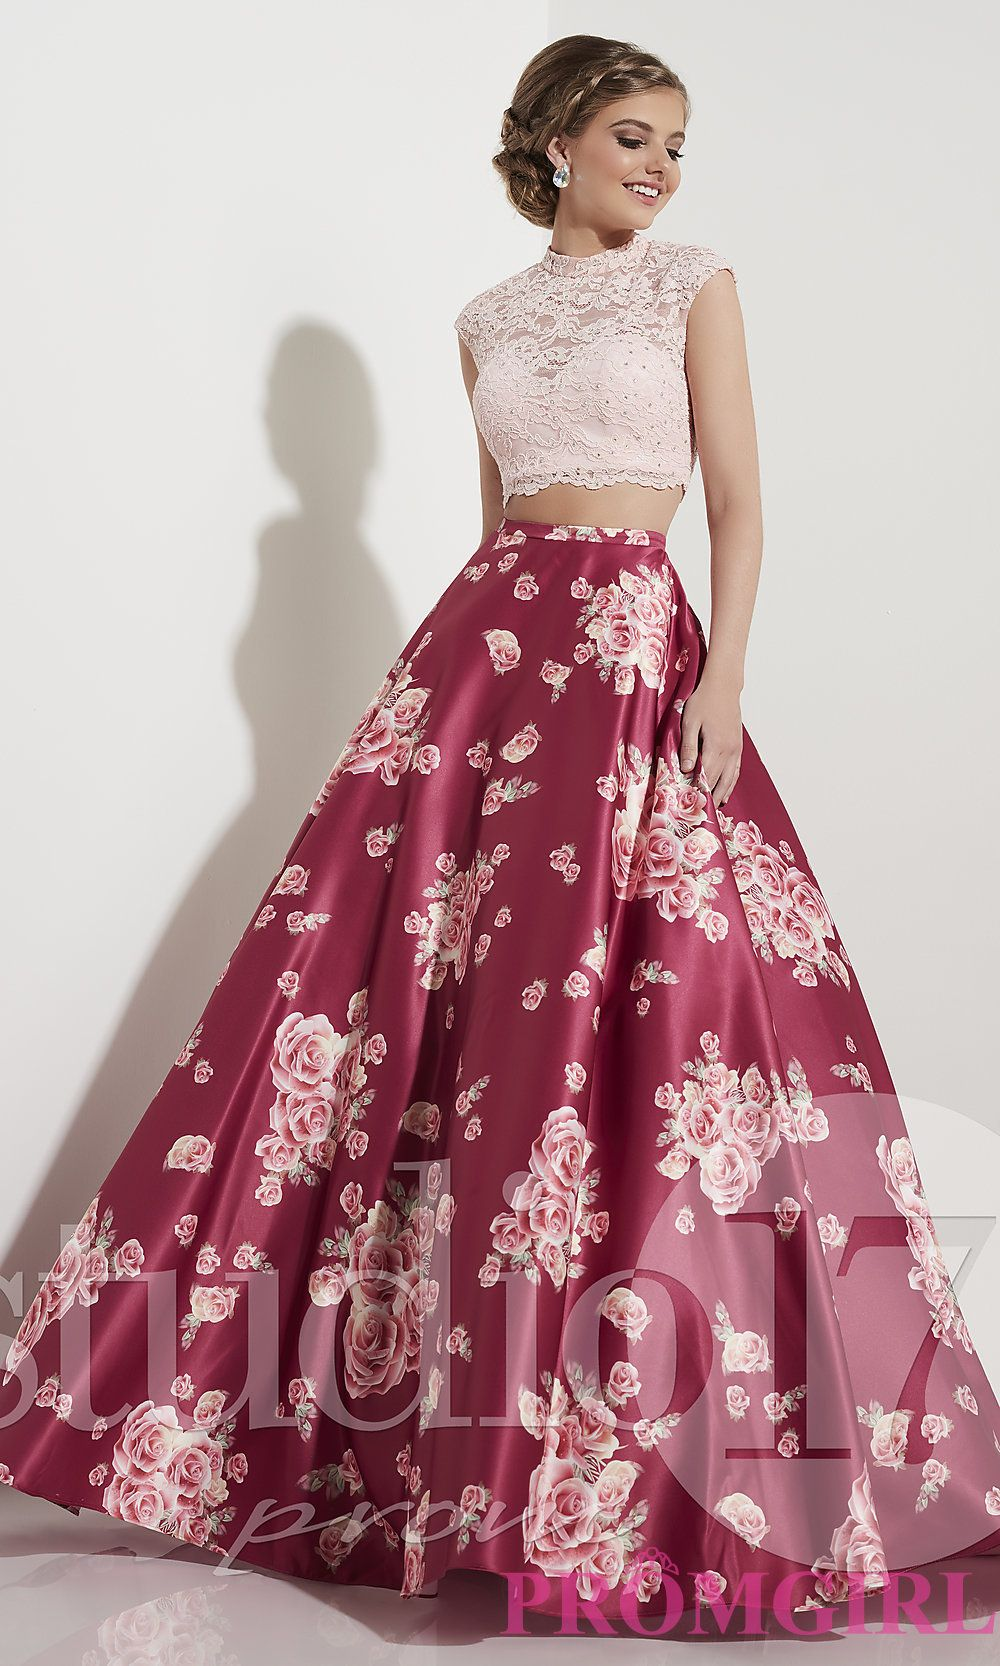 I like style st from promgirl do you like prom dress